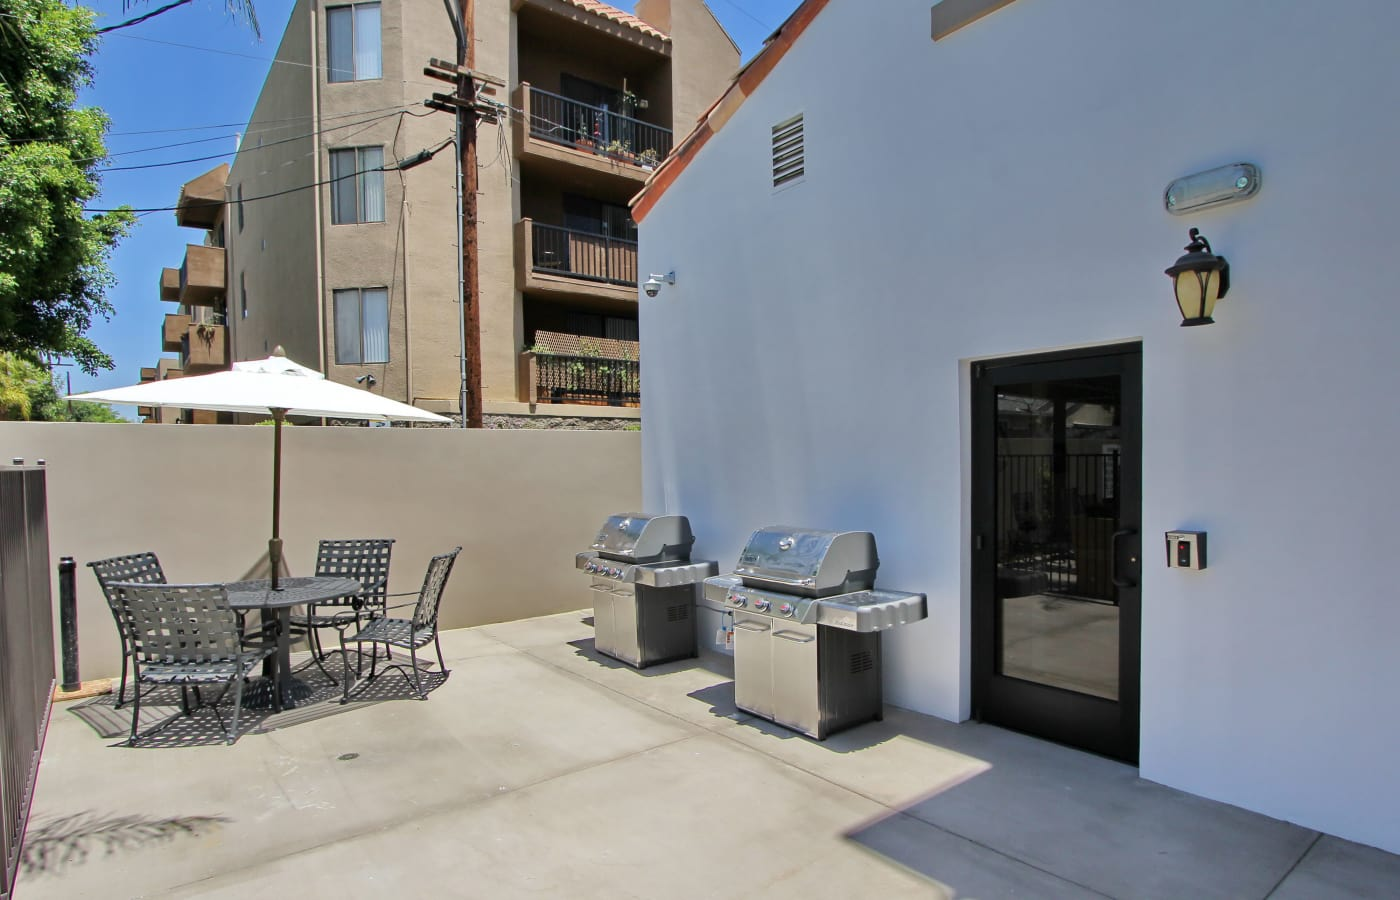 Barbecue grills and shaded seating outside at IMT Magnolia in Sherman Oaks, CA